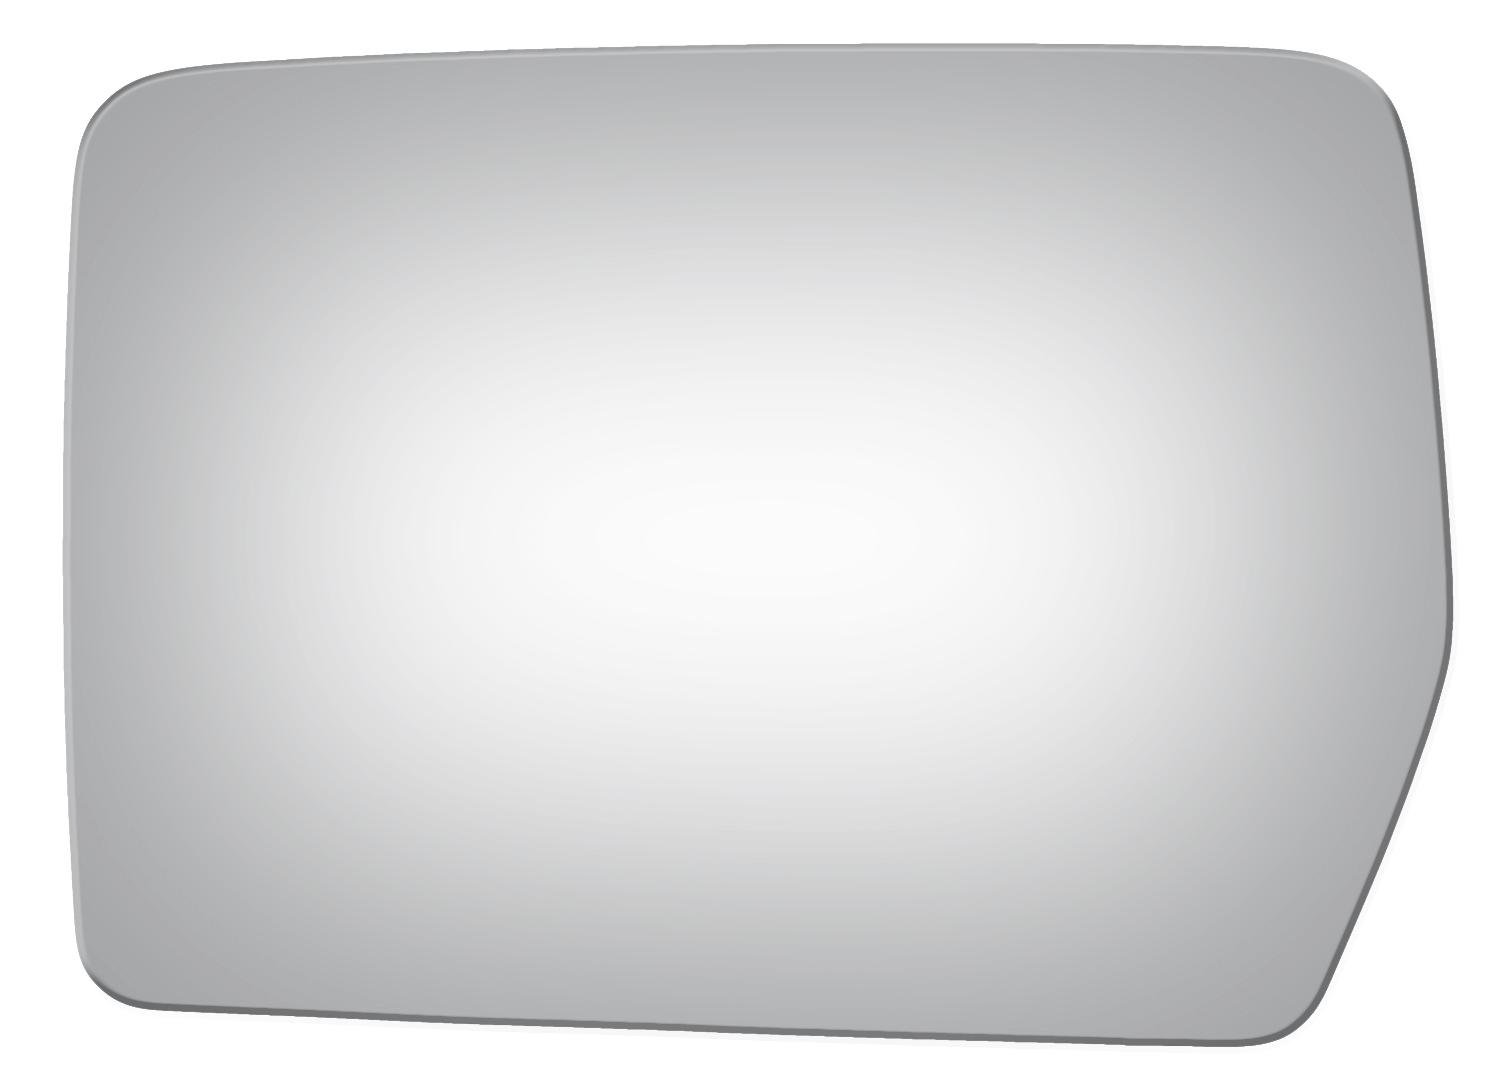 Burco 2980 Left Driver Side Replacement Mirror Glass for FORD F150 (2004 2005 2006 2007 2008 2009 2010)